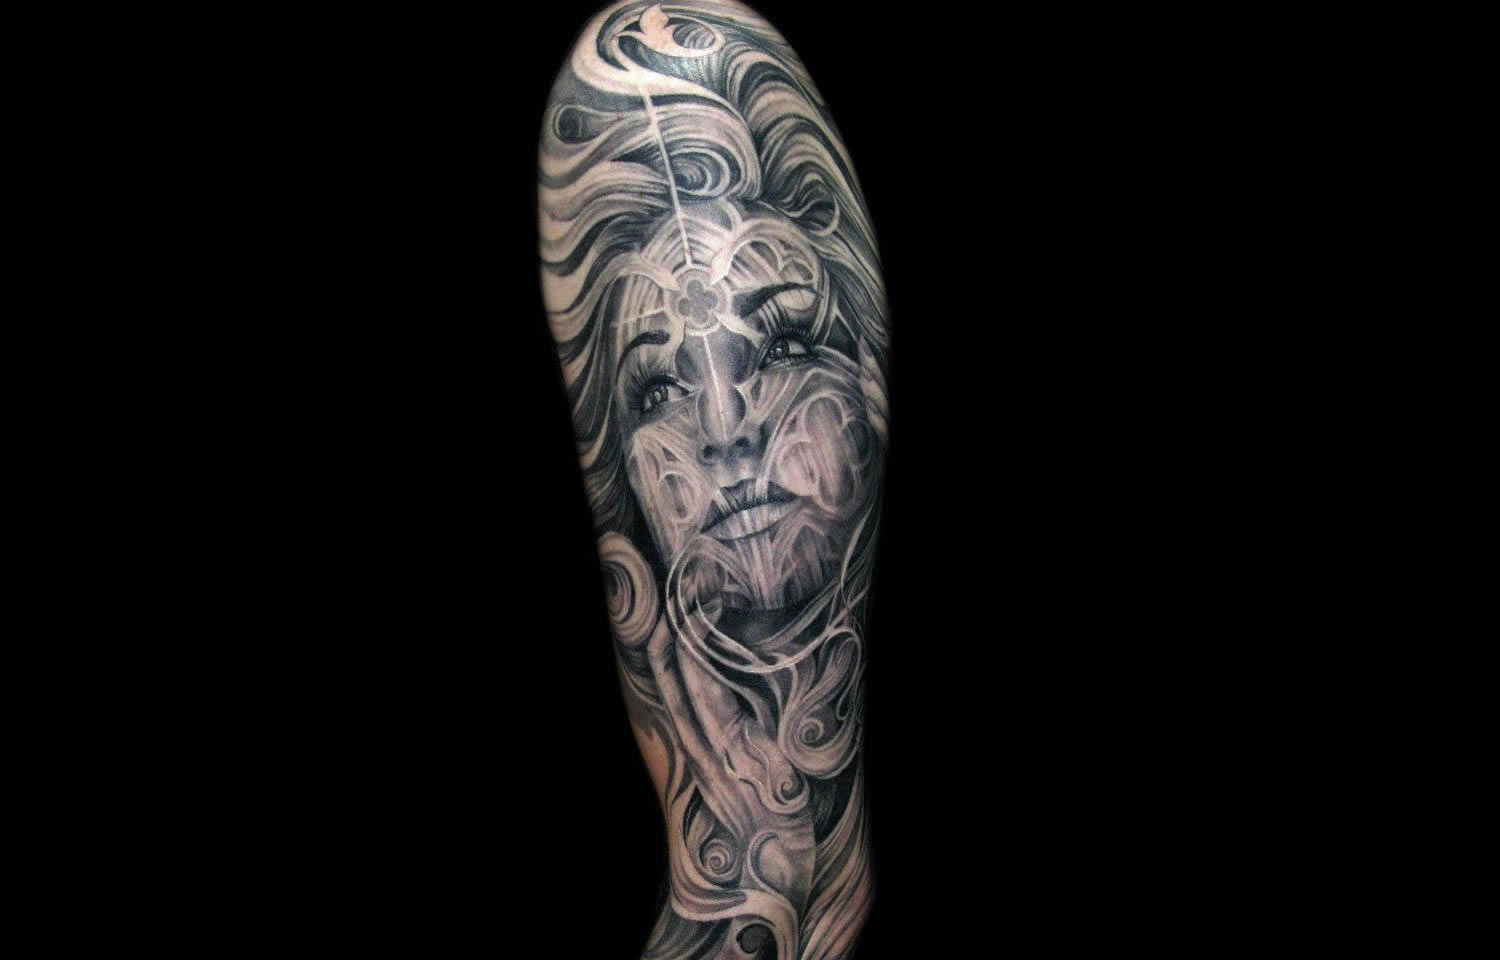 woman's face with decorative patterns on it, tattoo by tony mancia